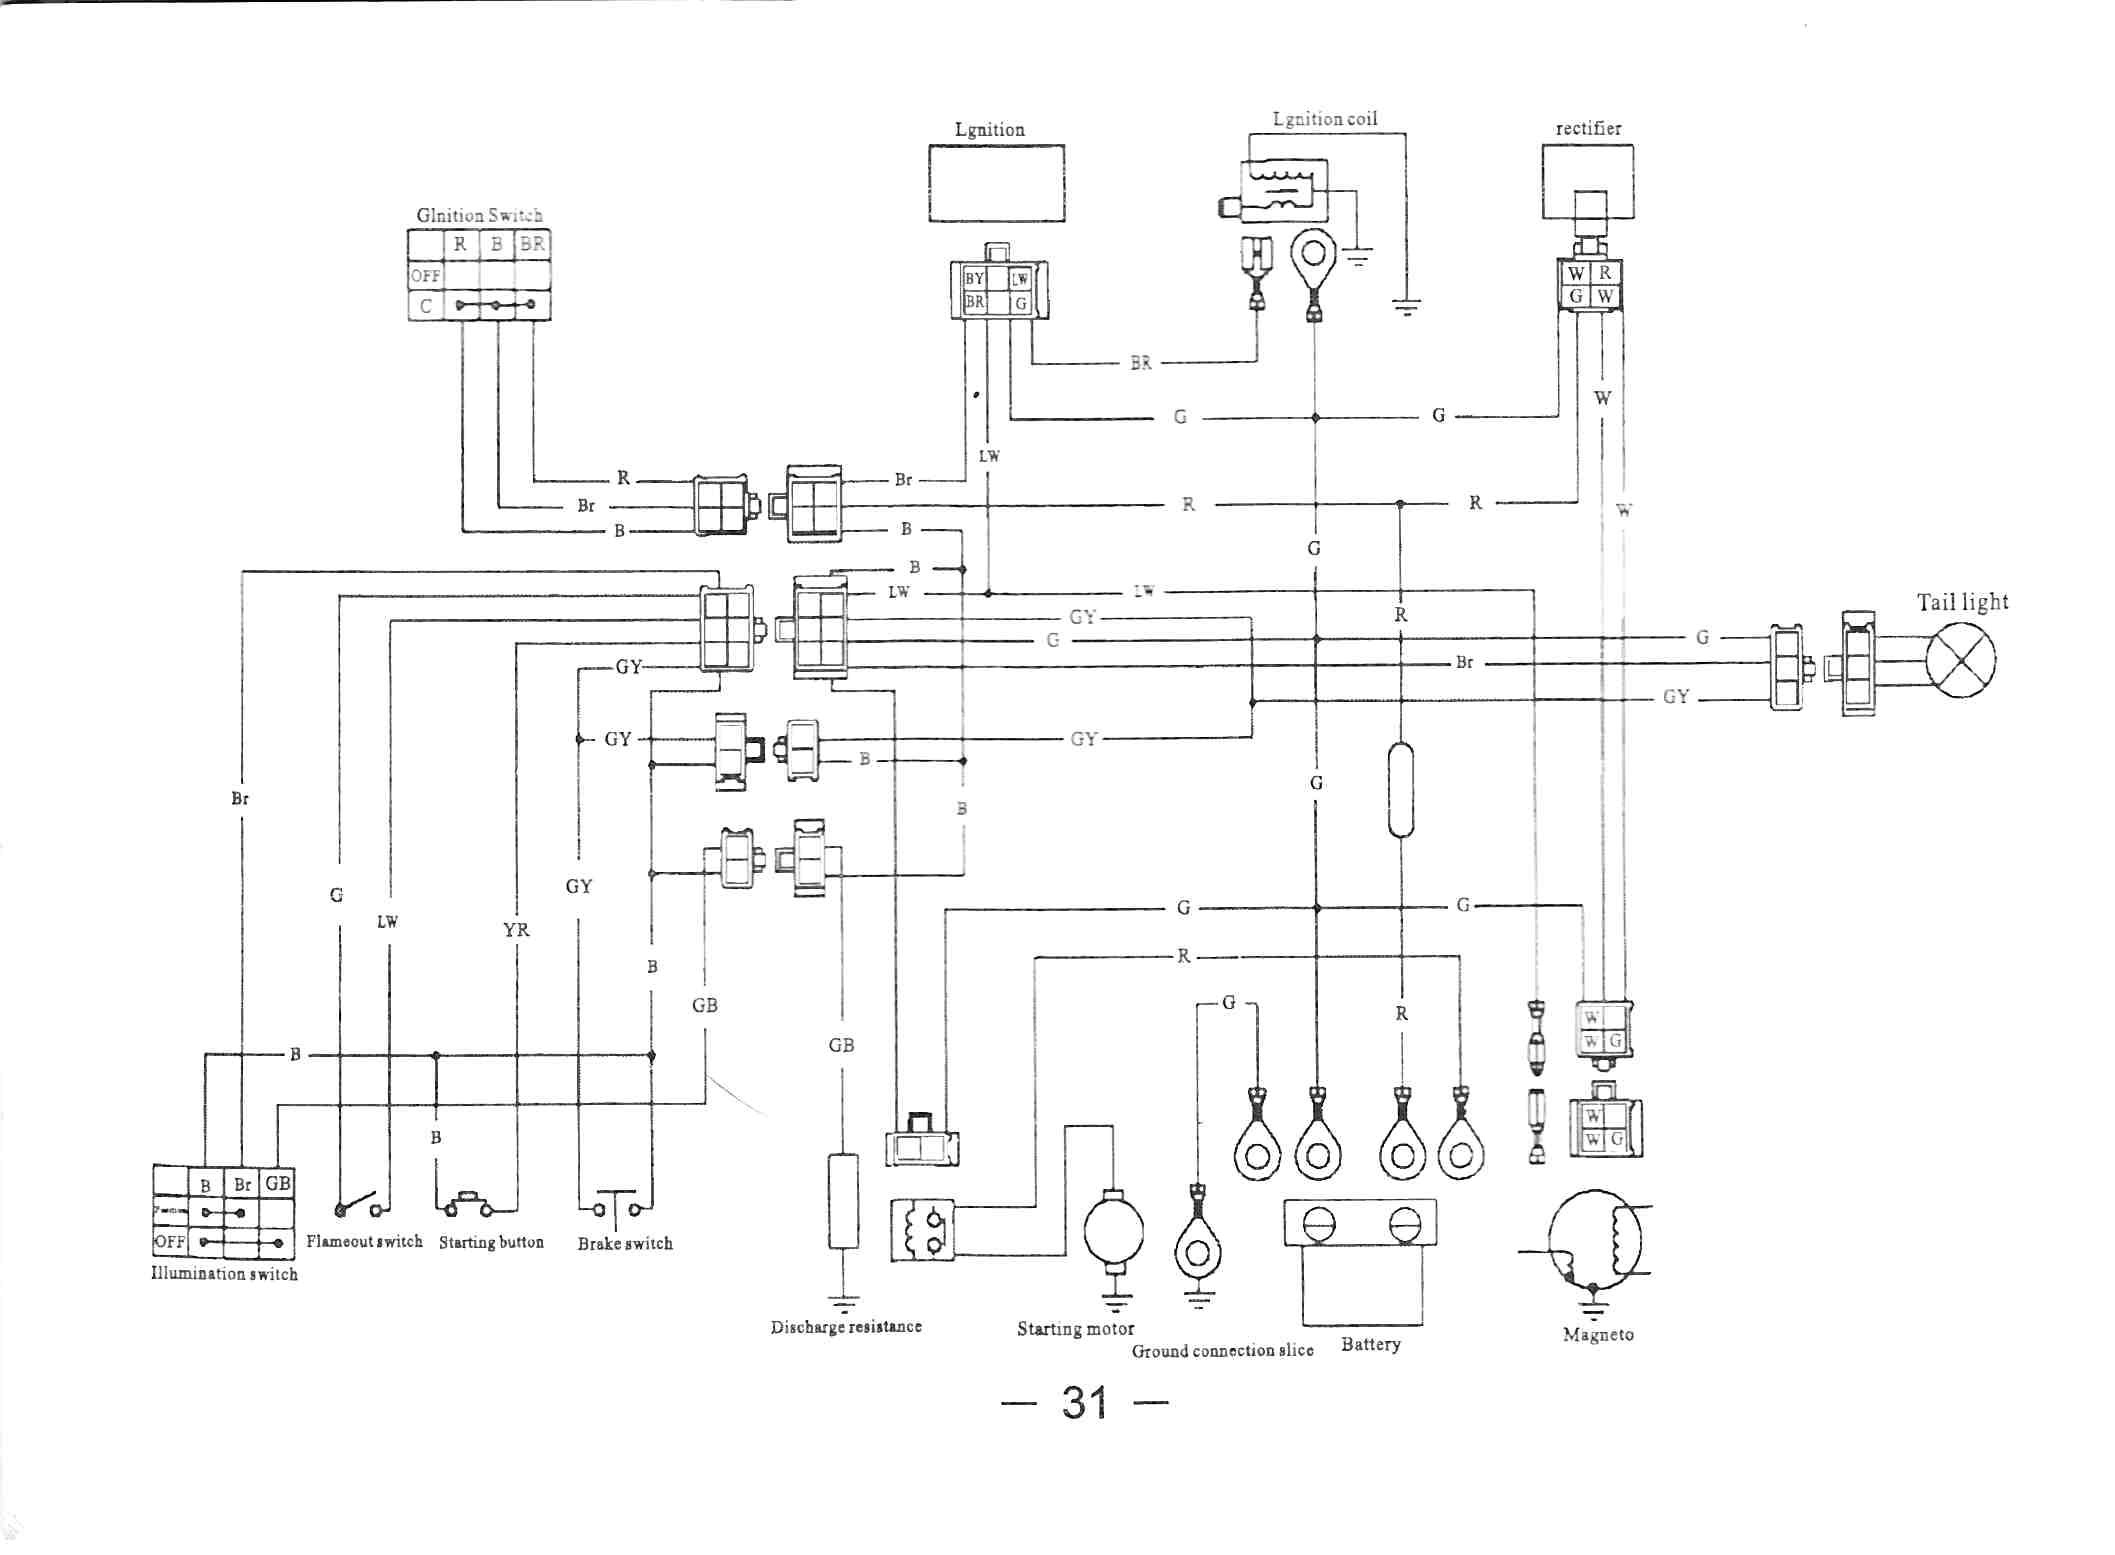 sunl 90cc atv wiring diagram collection of    wiring       diagram    for 110cc 4 wheeler sample  collection of    wiring       diagram    for 110cc 4 wheeler sample